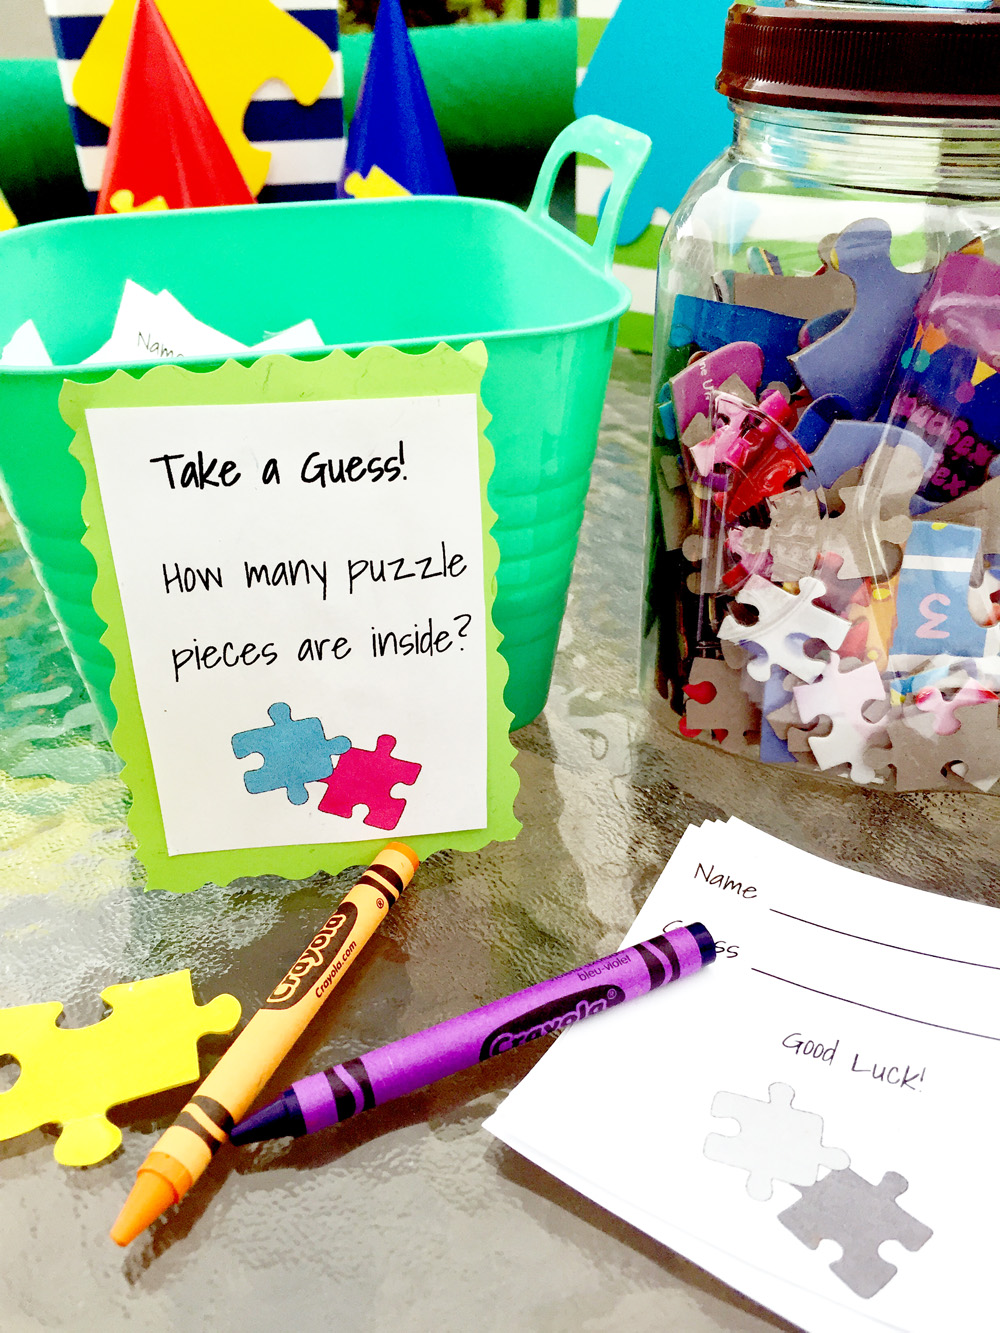 Awesome Puzzle Party Ideas - Guess the Number of Puzzle Pieces in the Jar